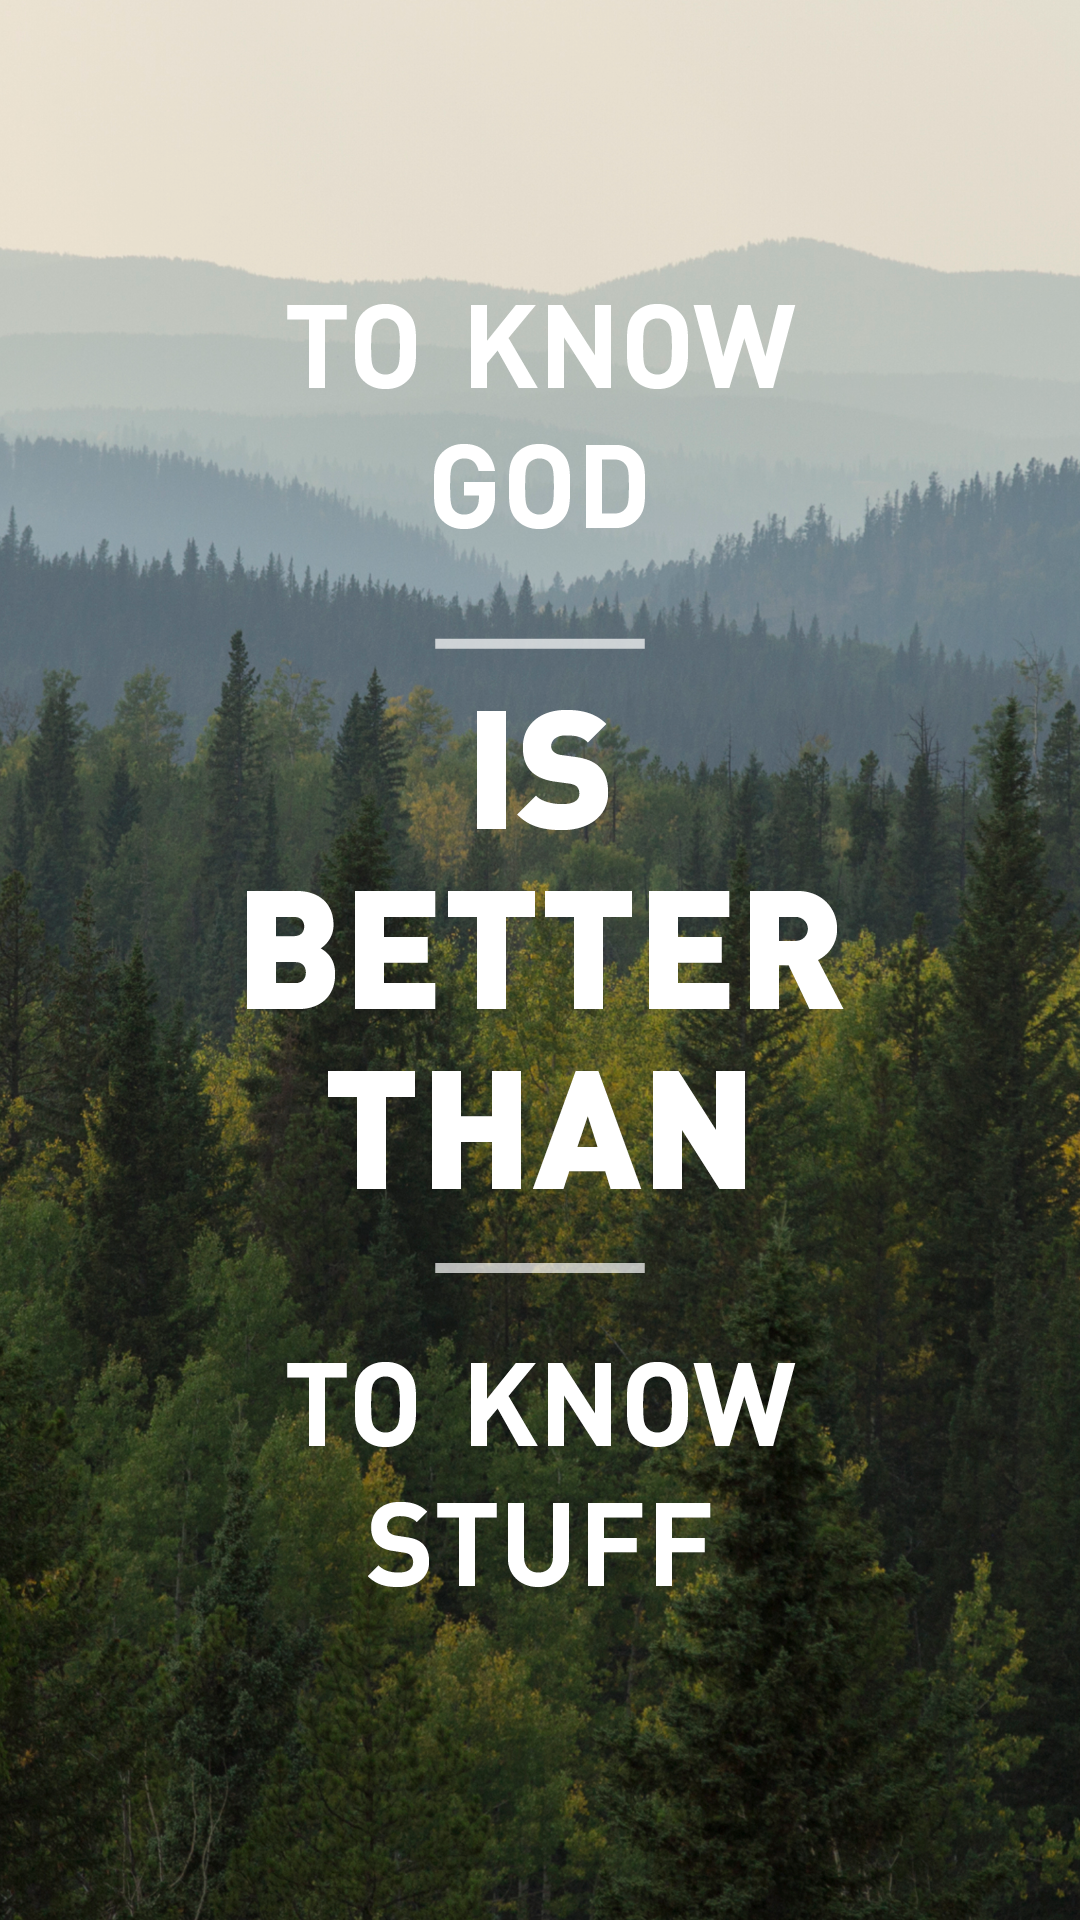 To know God is better than to know stuff